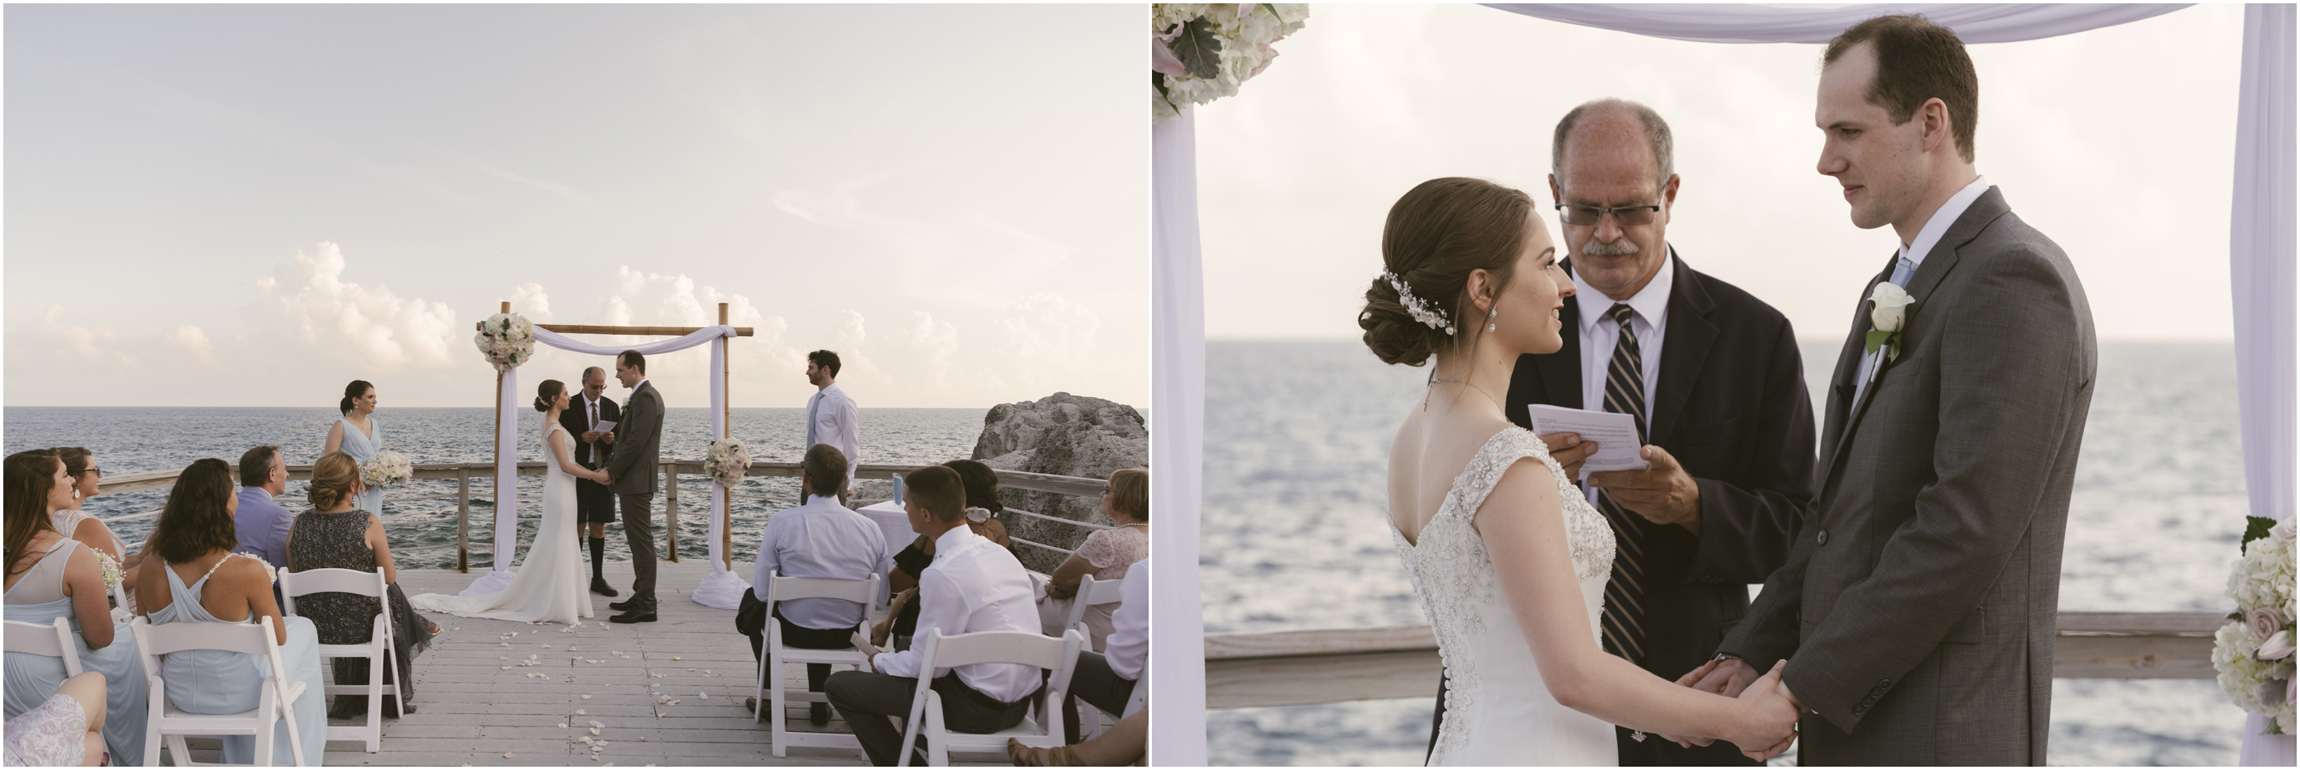 ©FianderFoto_Caribbean_Wedding_Photographer_The Reefs_Bermuda_Lauren_Erik_061.jpg